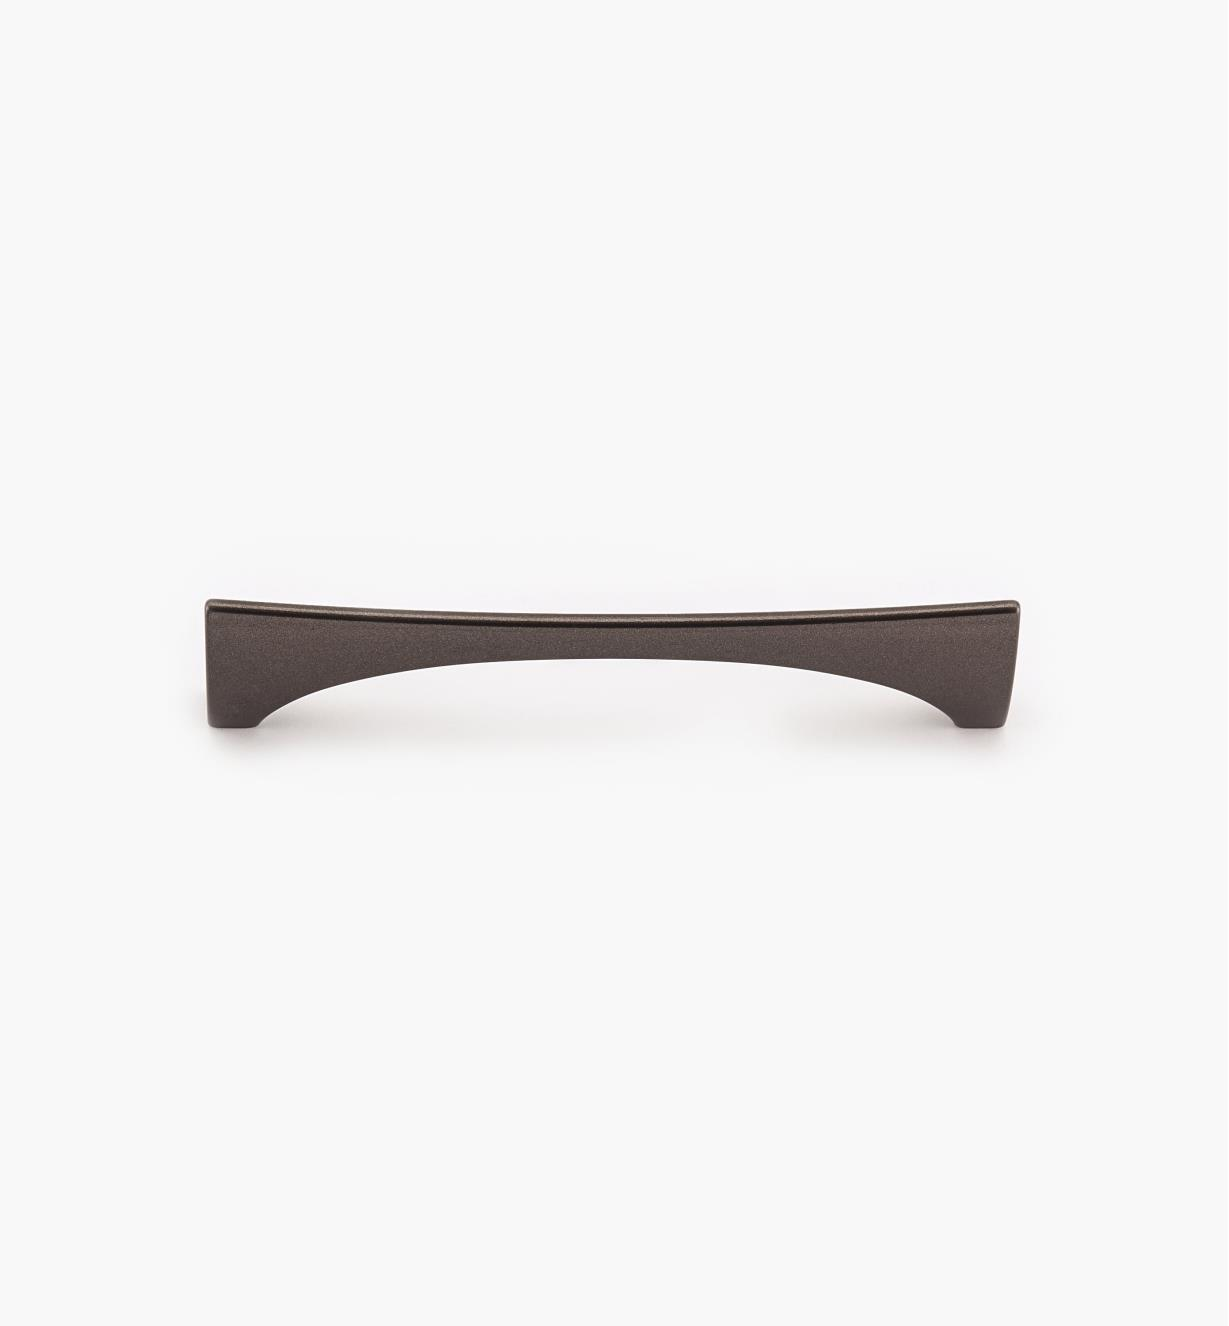 02W3931 - Niteroi 128mm Dark Brown Handle